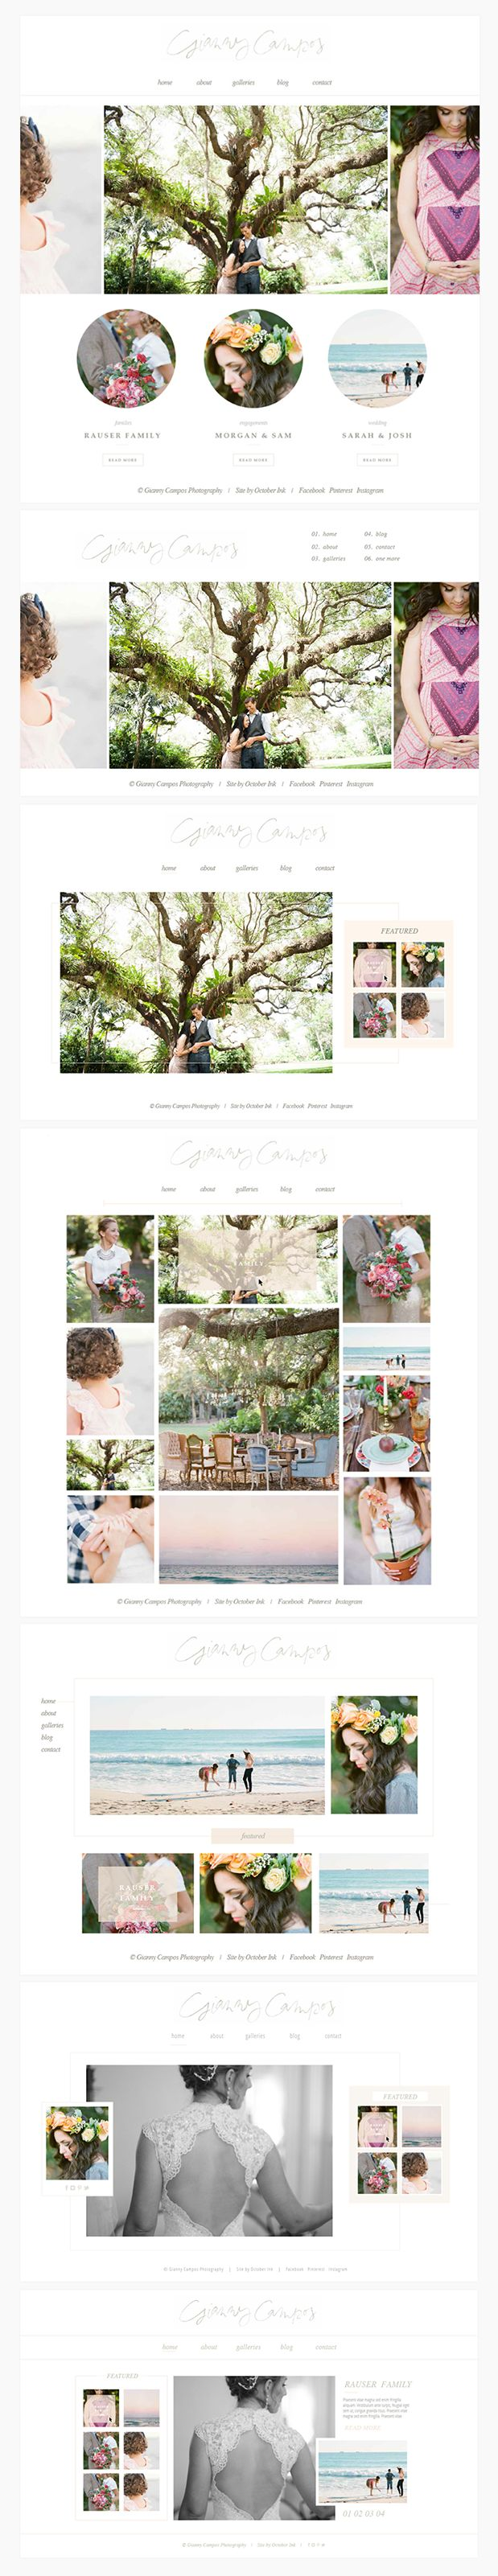 Gianny Campos Branding and Website Design from October Ink